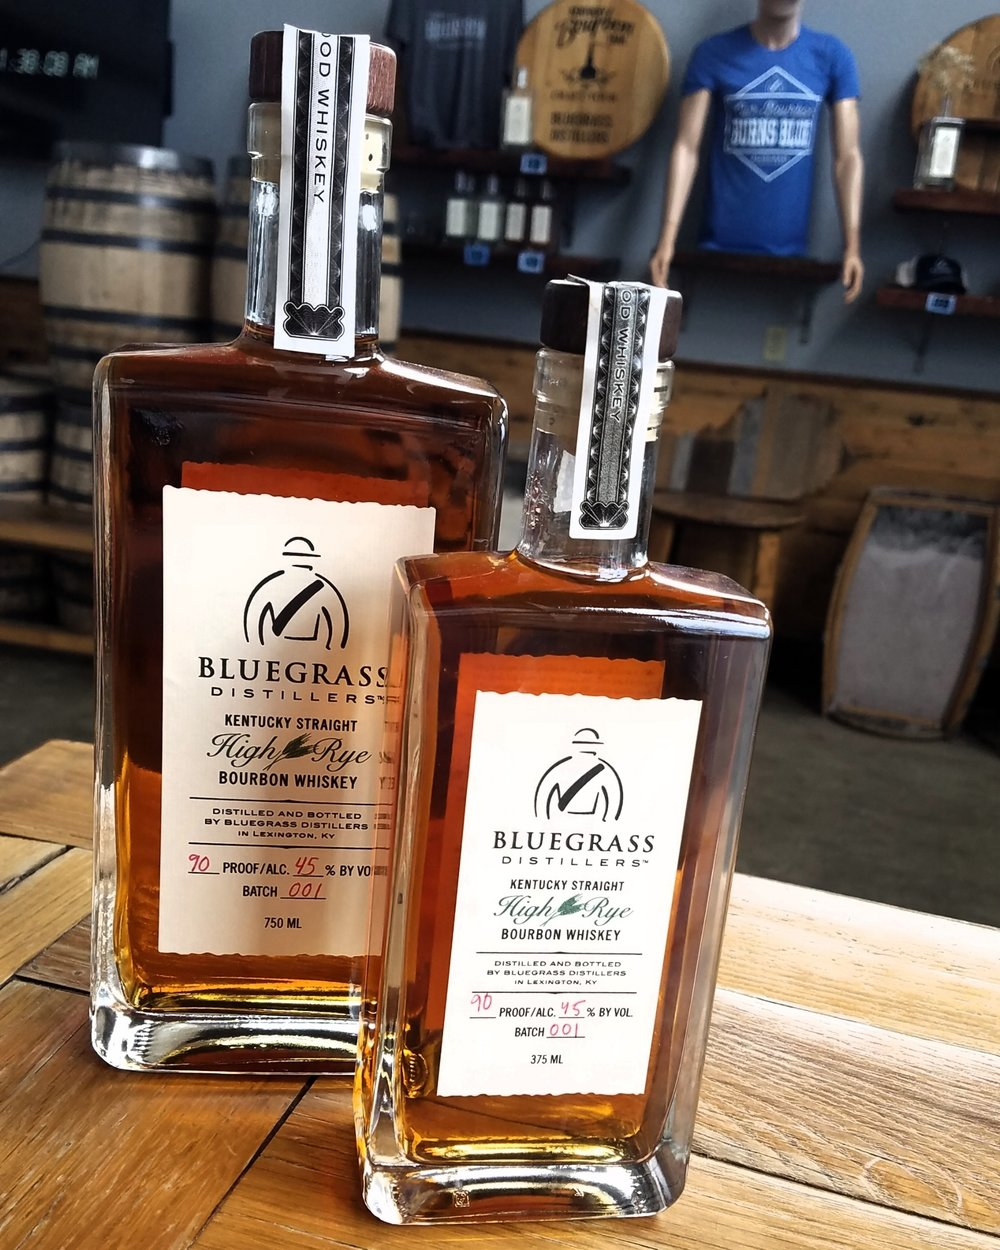 Kentucky Straight   High rye bourbon - Our flagship bourbon is bottled at 90 Proof and made with 75% yellow corn, 15% rye, and 10% malted barley. It has aromatic notes of butterscotch and spices with a peppery, spiced flavor. Barrel-aged for at least 2 years.Also available in Barrel Drawn